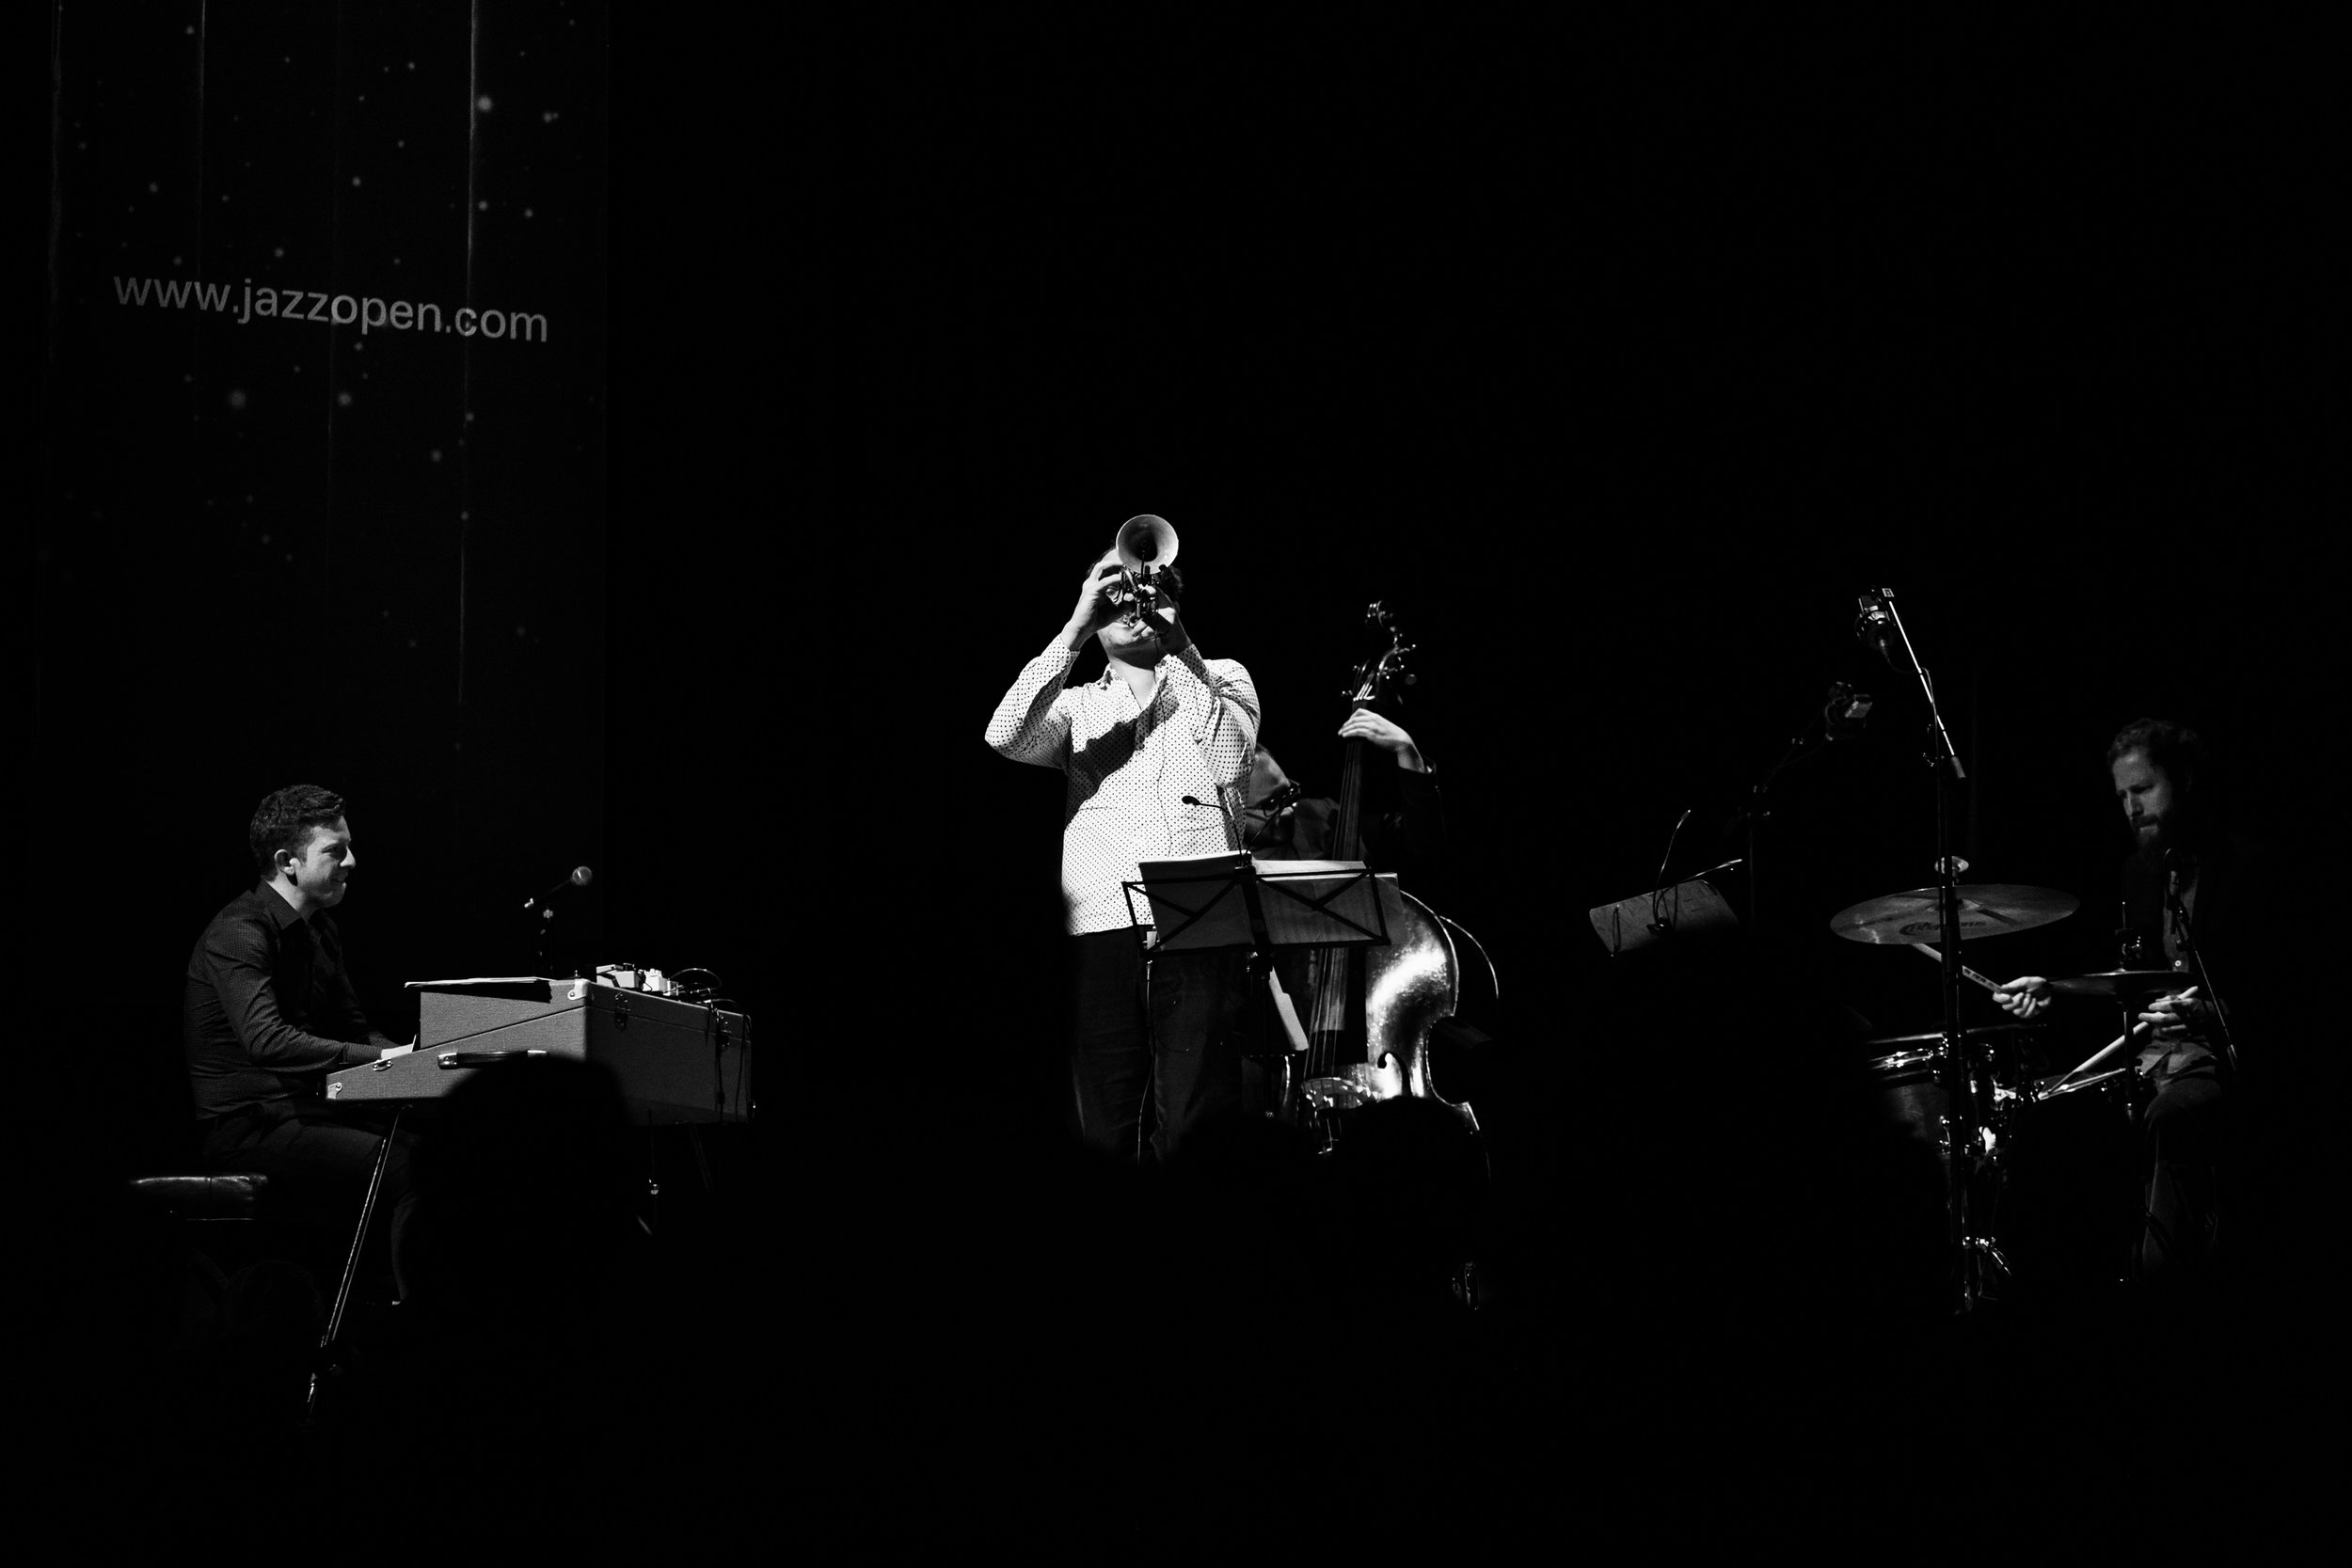 20171102_jazzopen-night-5.jpg